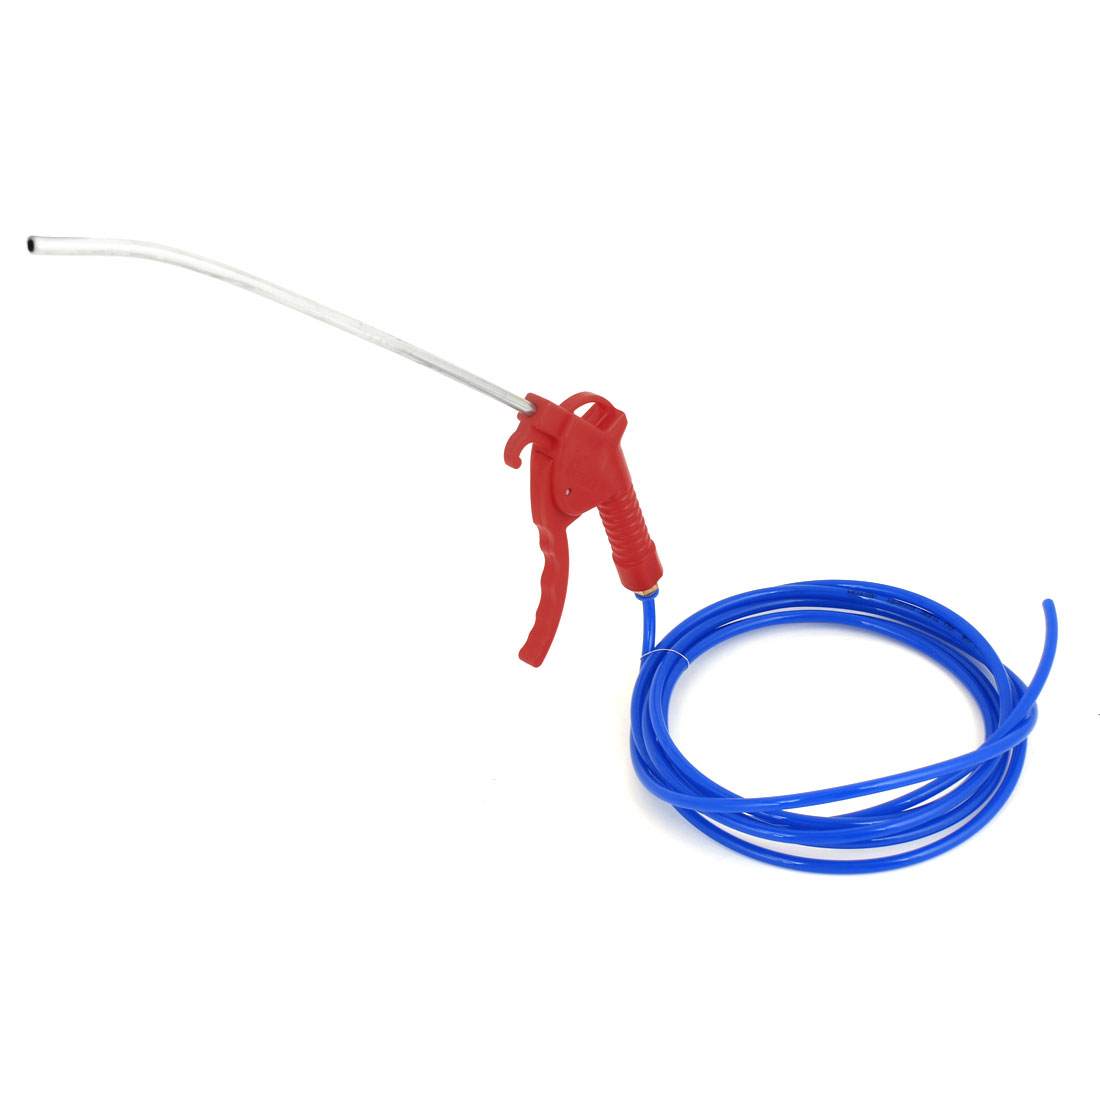 Red Plastic Trigger High Pressure Air Blowing Gun + Blue 4mm Inner Dia Hose Tube 3Meter